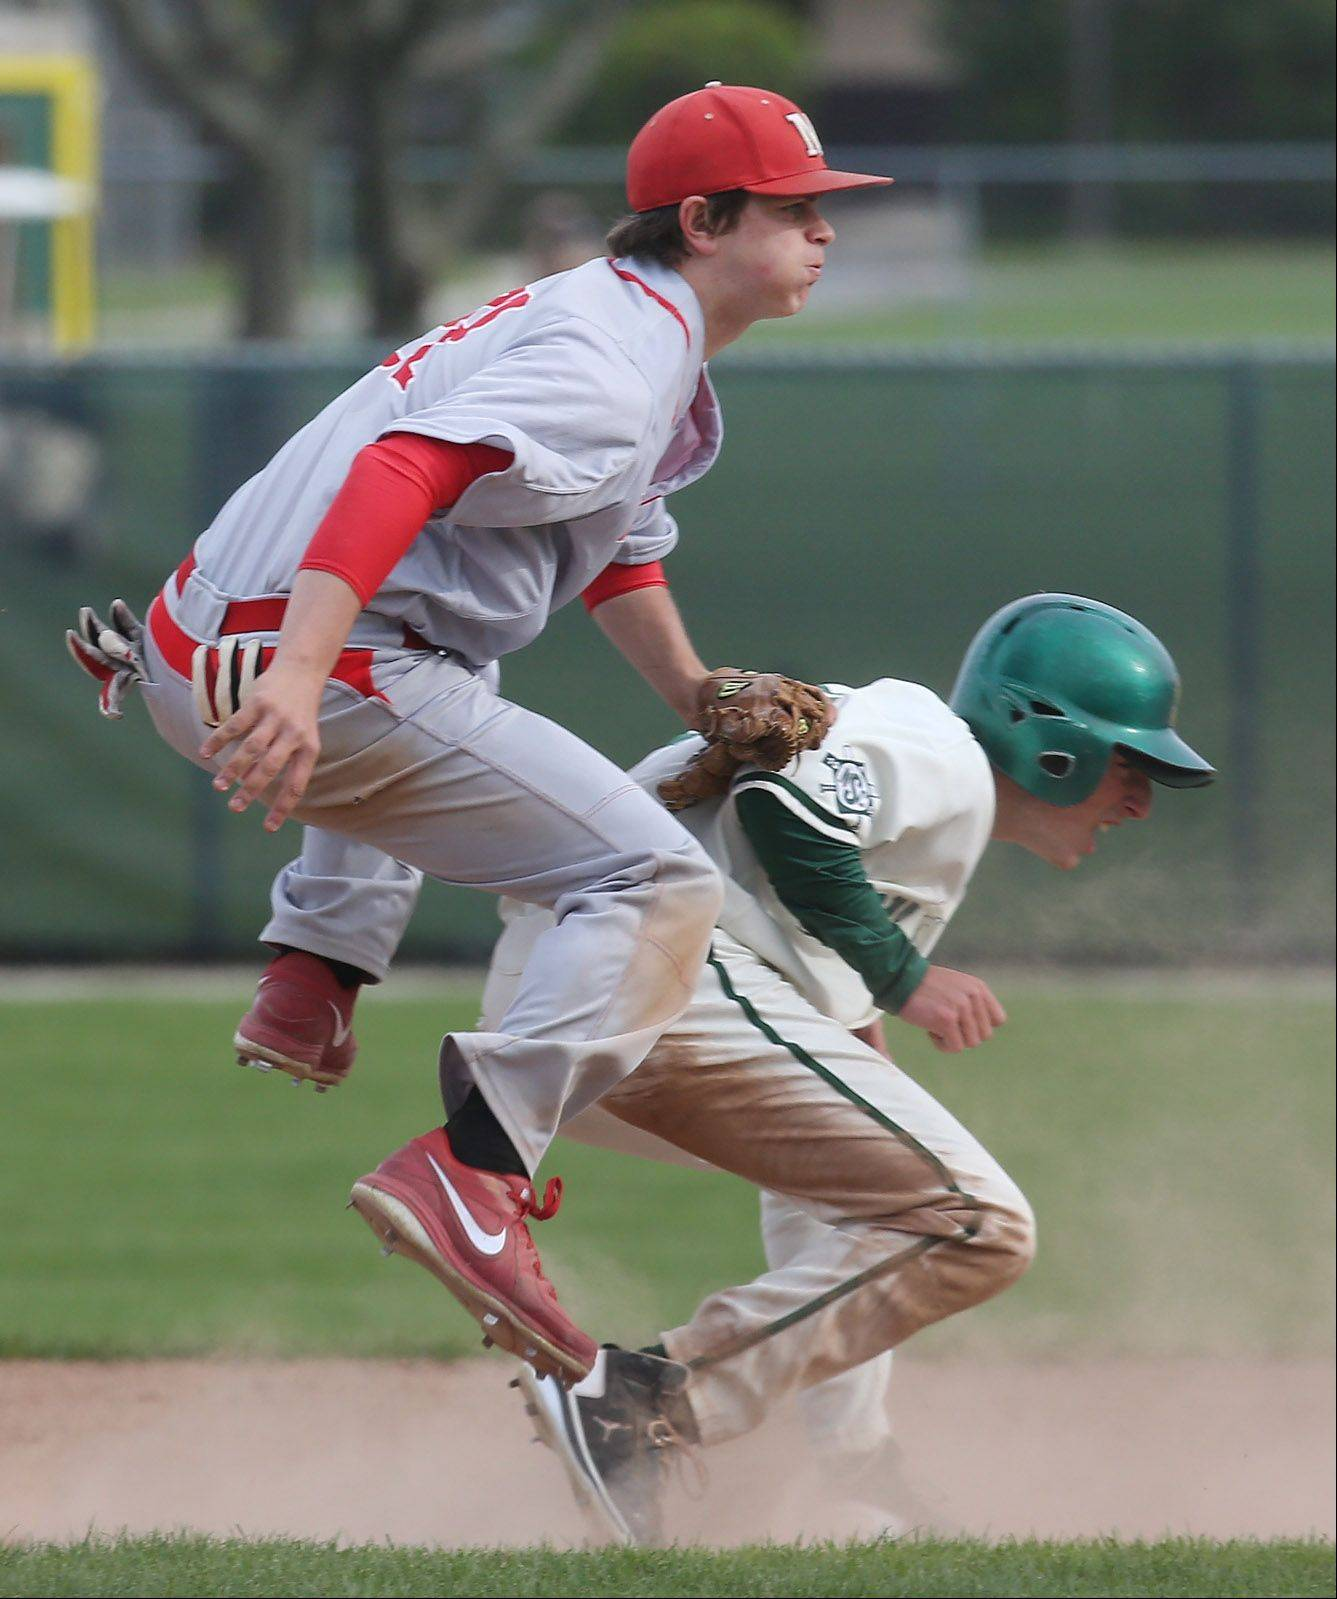 Mundelein's Will Farmer turns the double play after getting Stevenson's Eli Greenspon out at second base on Monday.